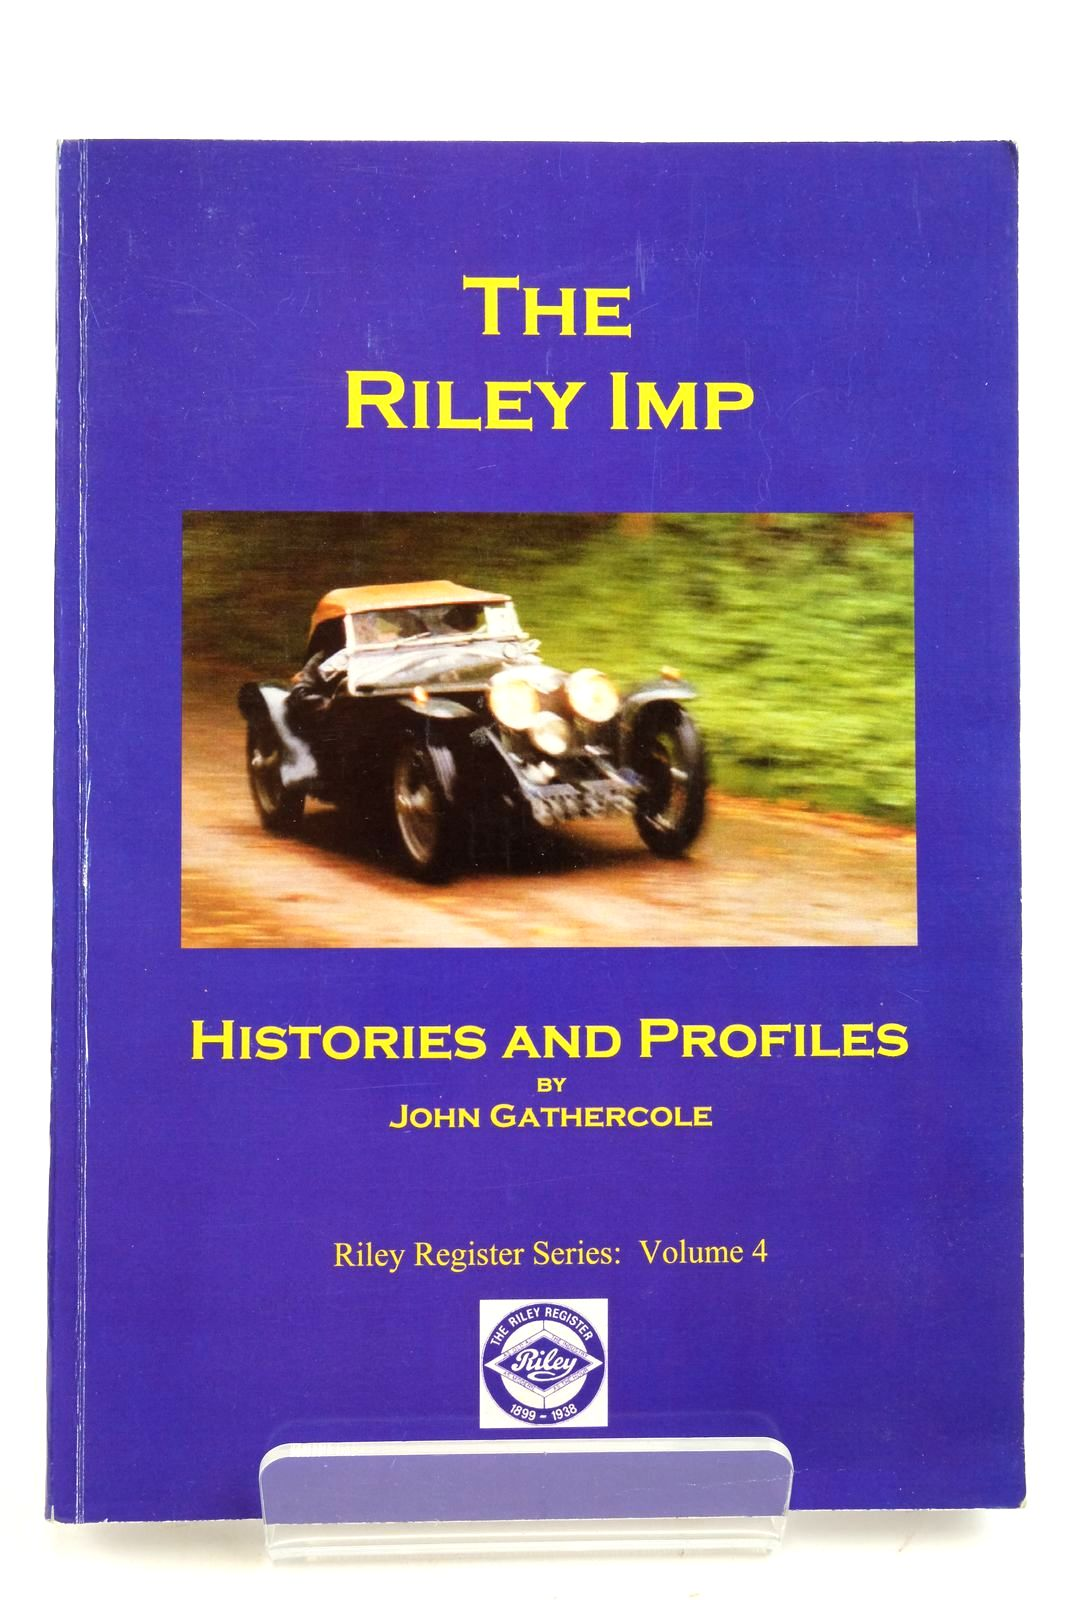 Photo of THE RILEY IMP HISTORIES AND PROFILES written by Gathercole, John published by Wisteria Cottage Publishing Ltd (STOCK CODE: 2132974)  for sale by Stella & Rose's Books